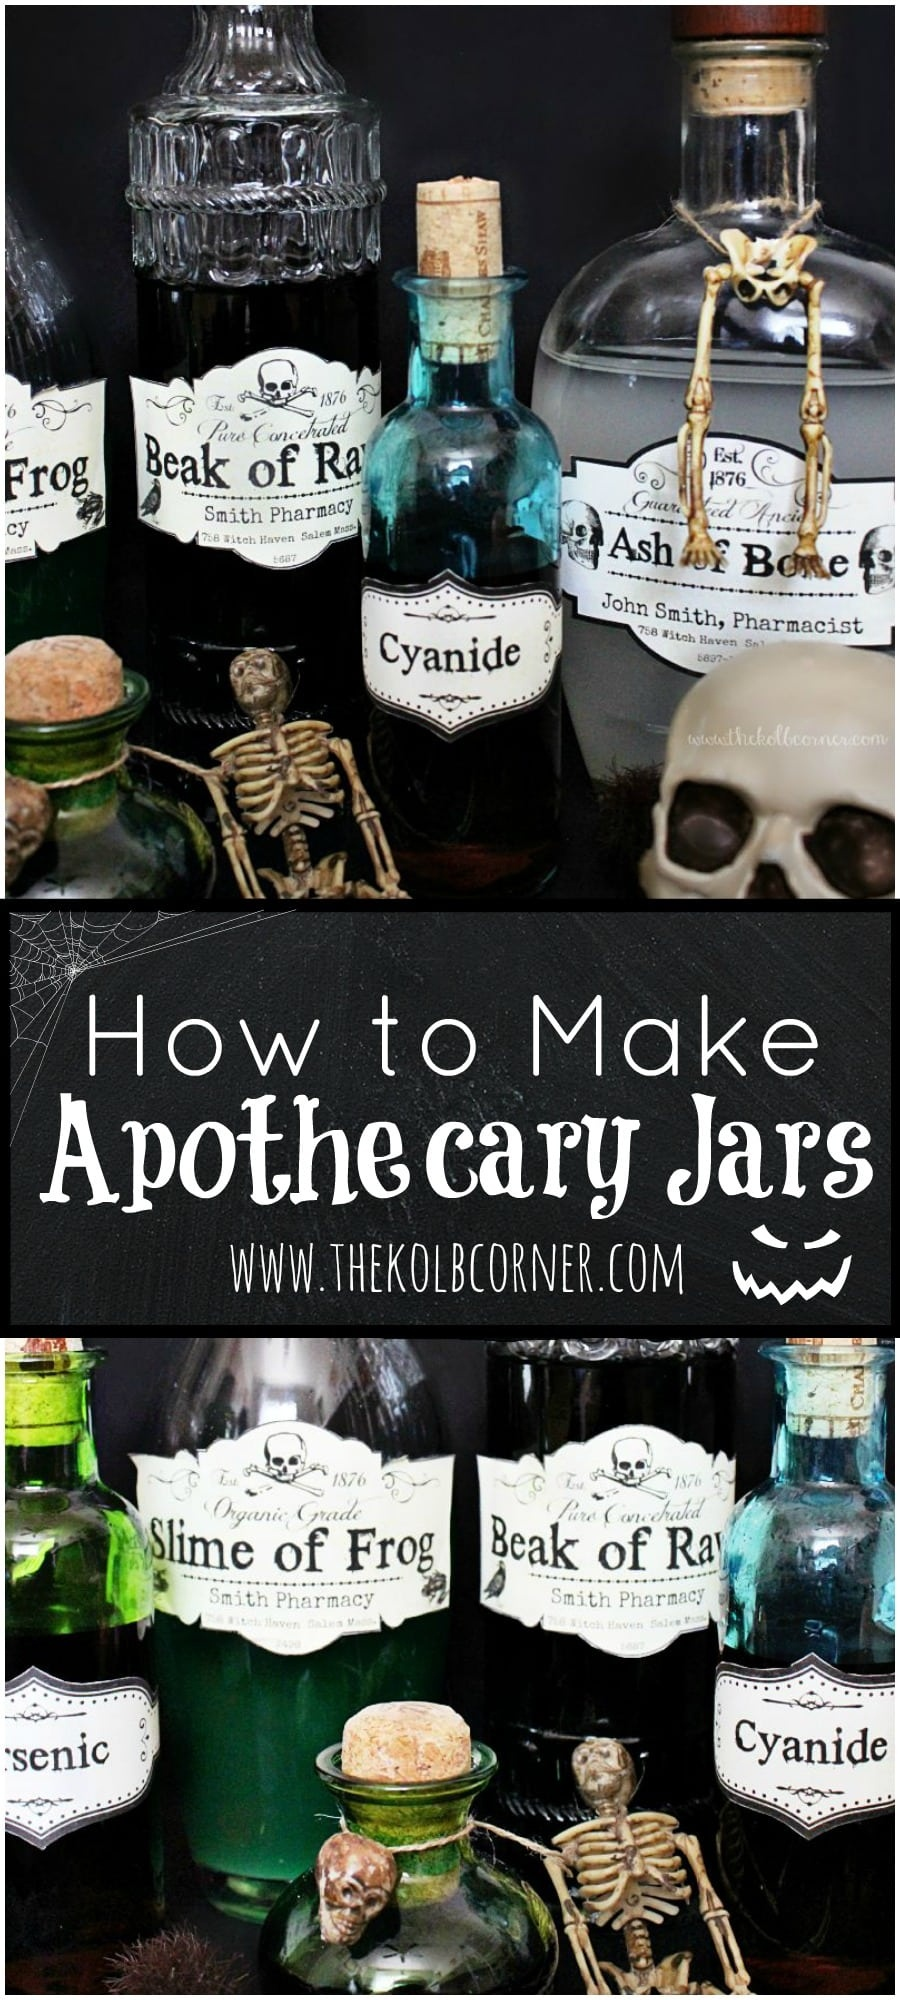 How To Make Apothecary Jars And Free Printable Labels | Domestically - Free Printable Apothecary Jar Labels